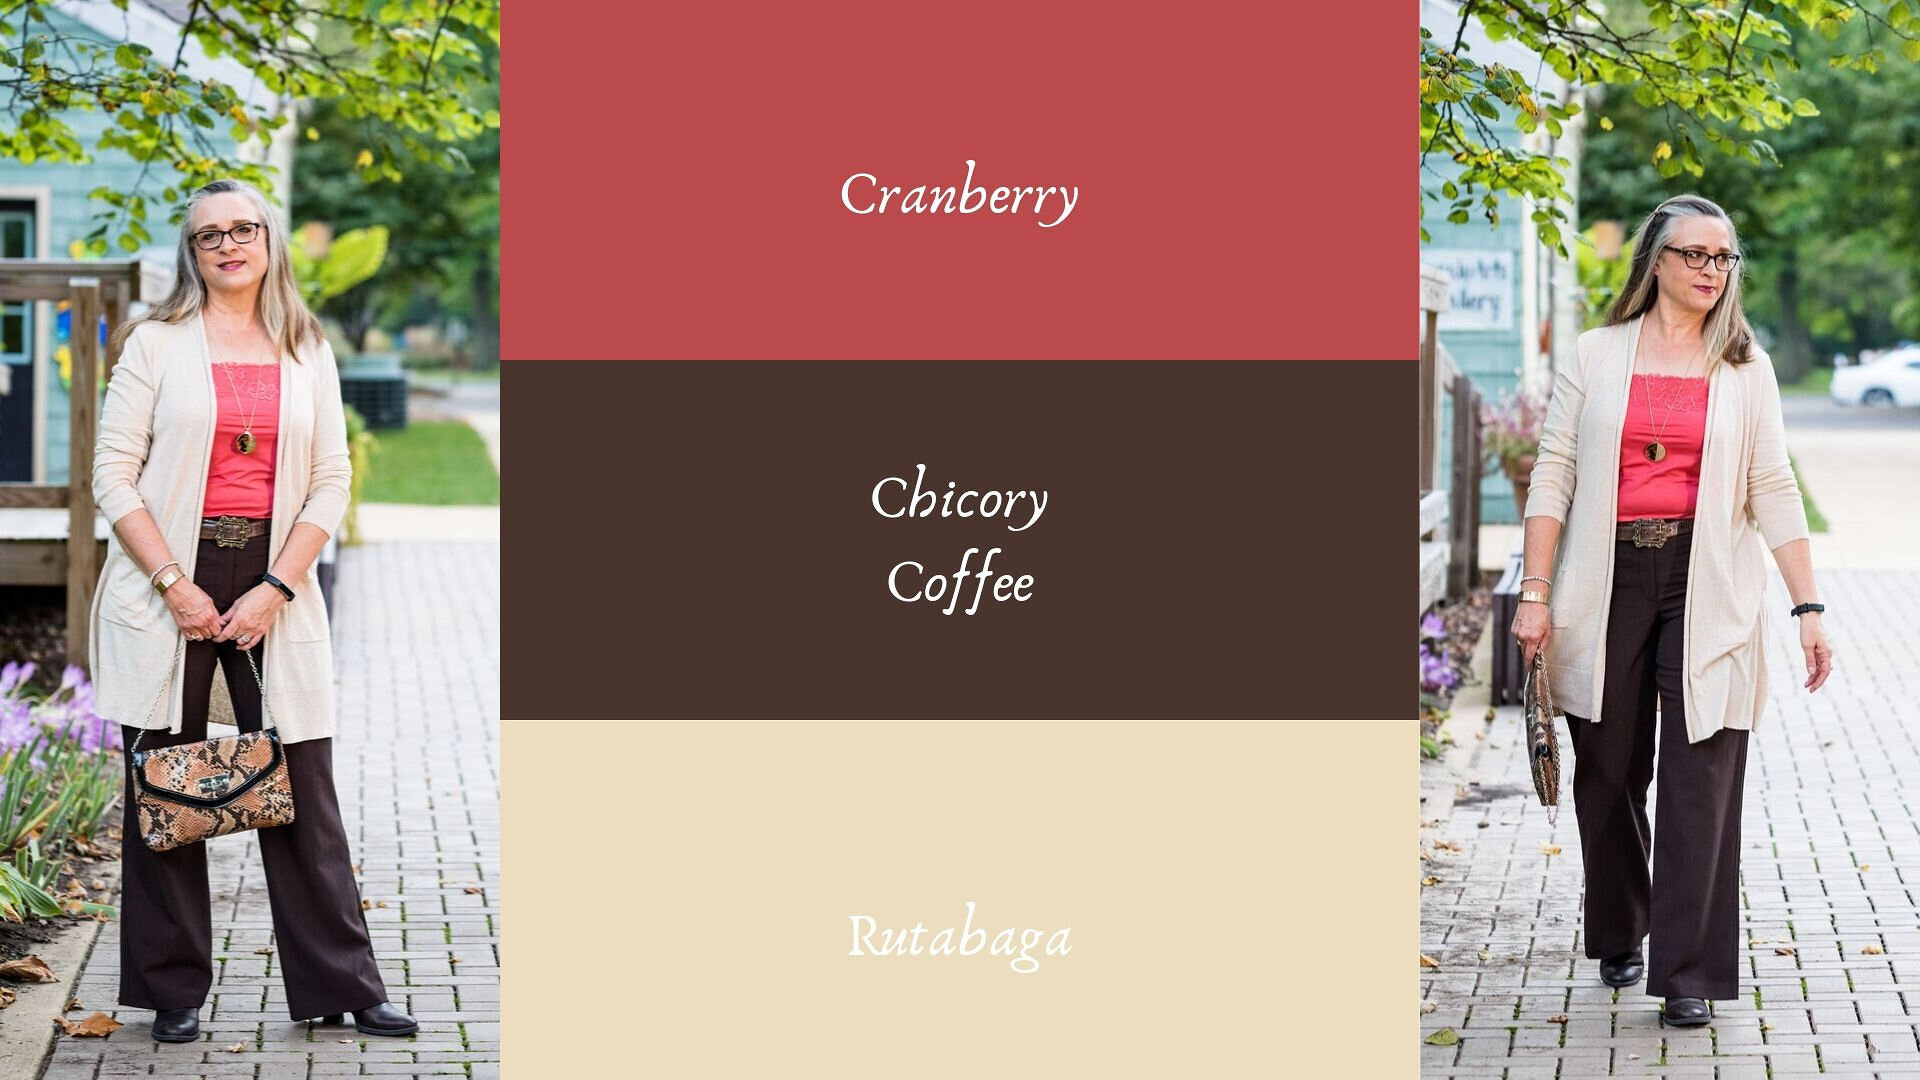 Pantone - Autumn/Winter - 2019 - Cranberry and Chicory Coffee